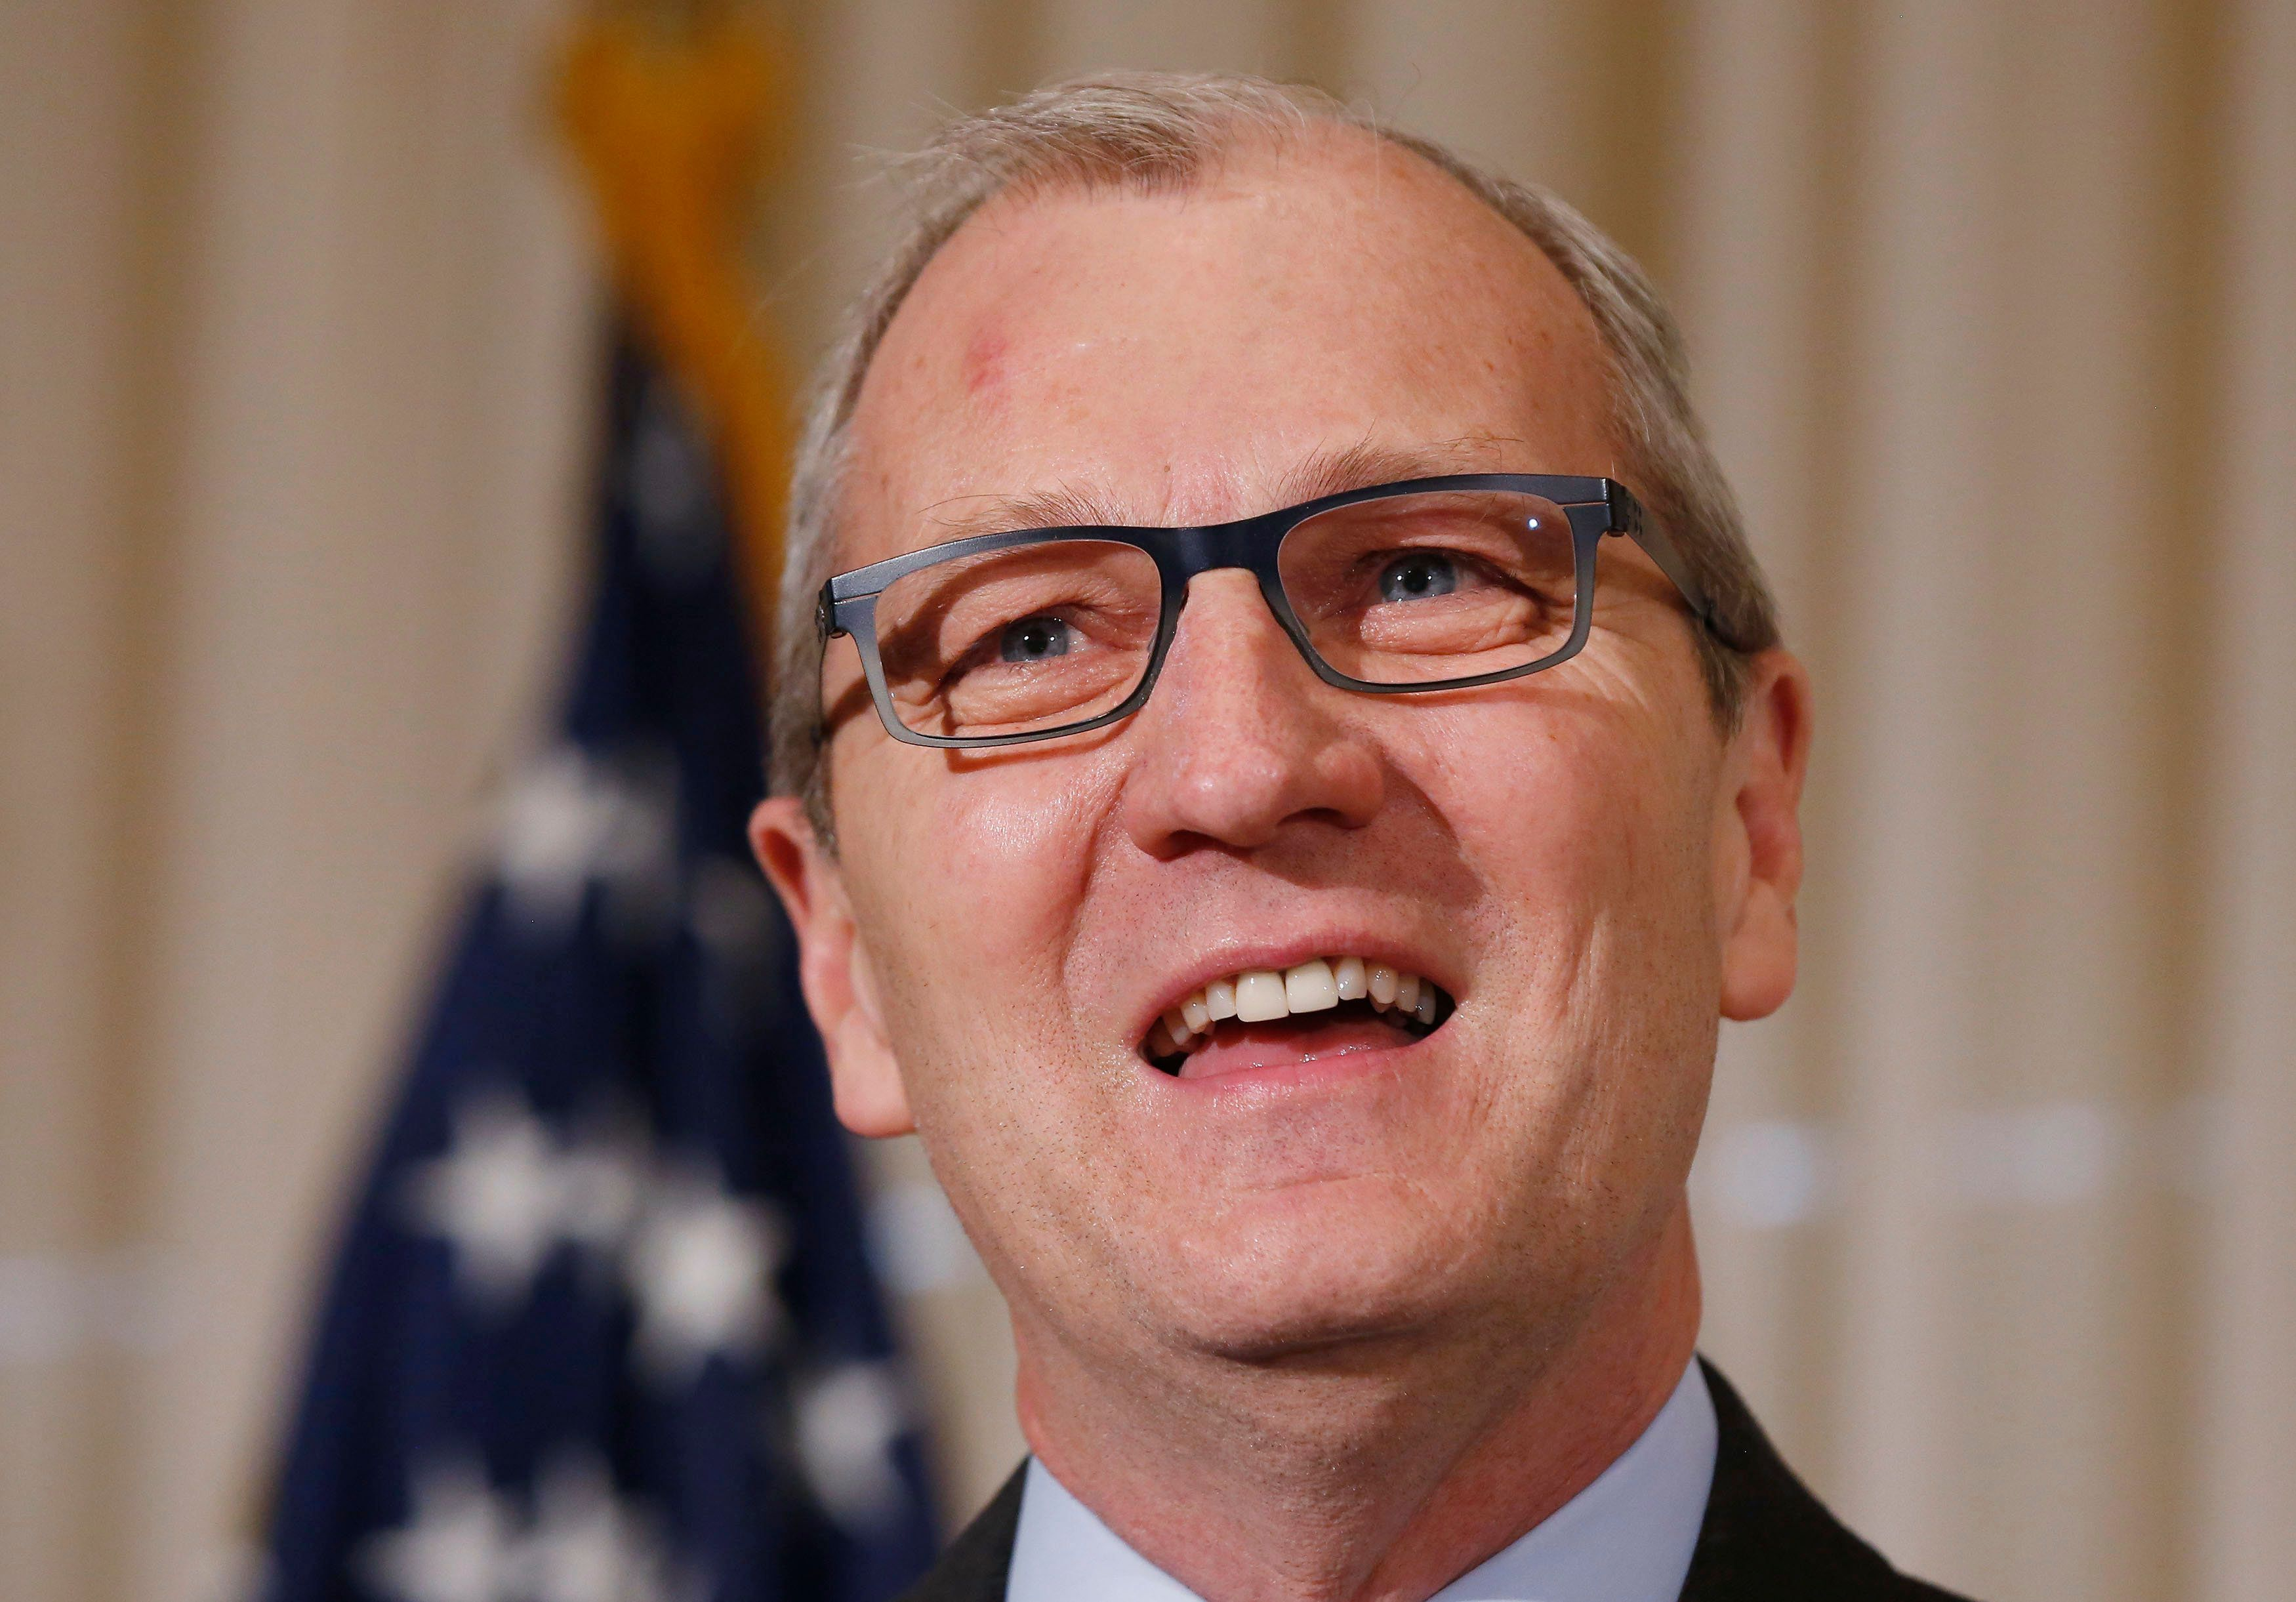 U.S. Representative Kevin Cramer (R-ND) speaks at the National Press Club in Washington, DC, United States on January 8, 2015.  REUTERS/Larry Downing/File Photo